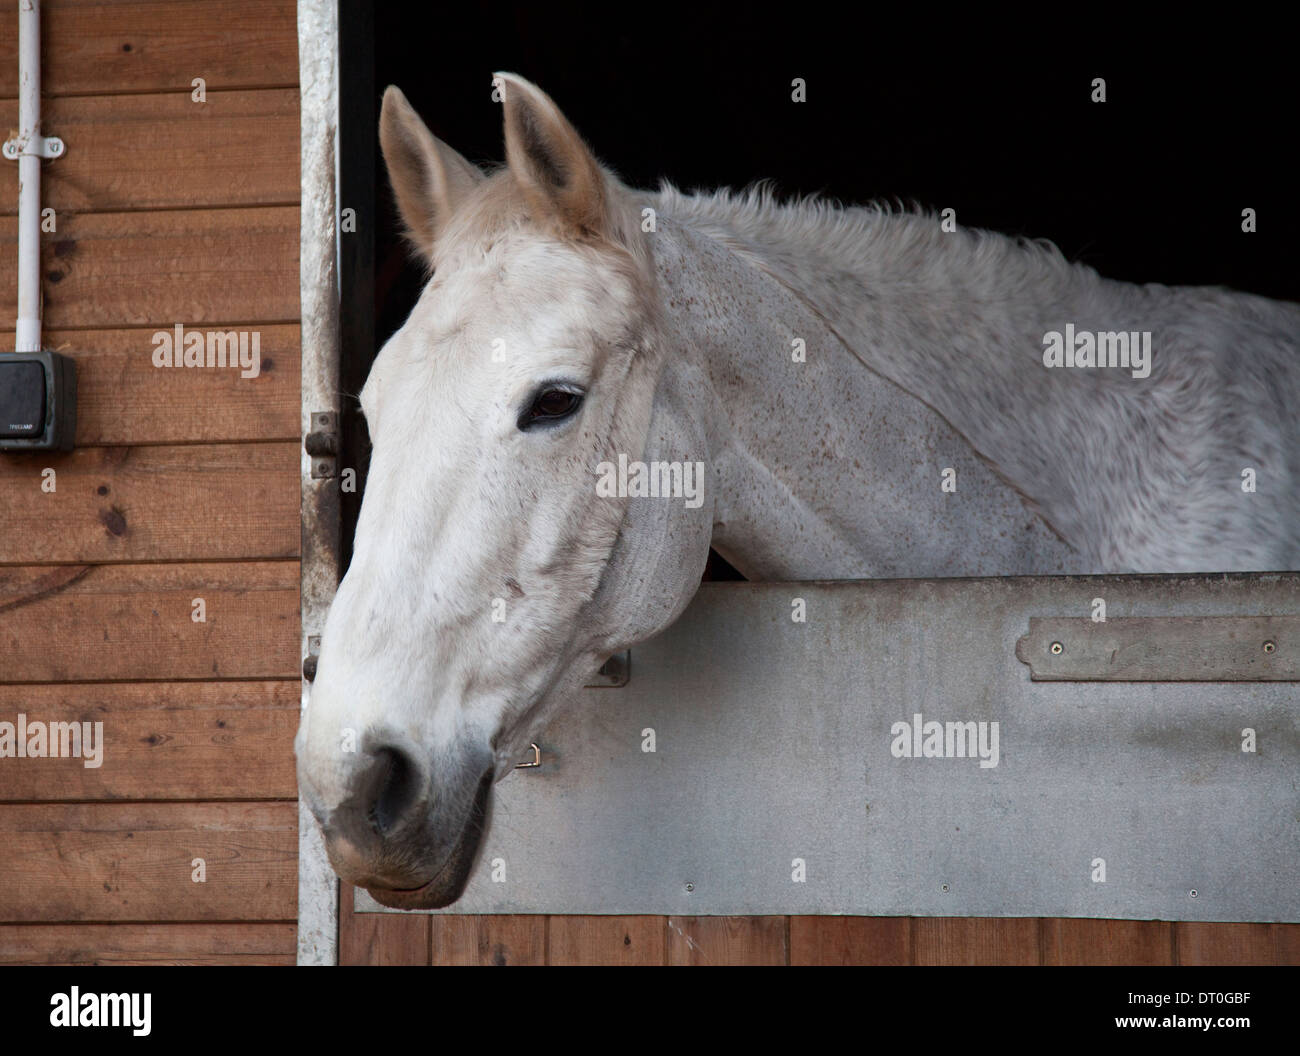 White Horse In Stable Stock Photo Alamy